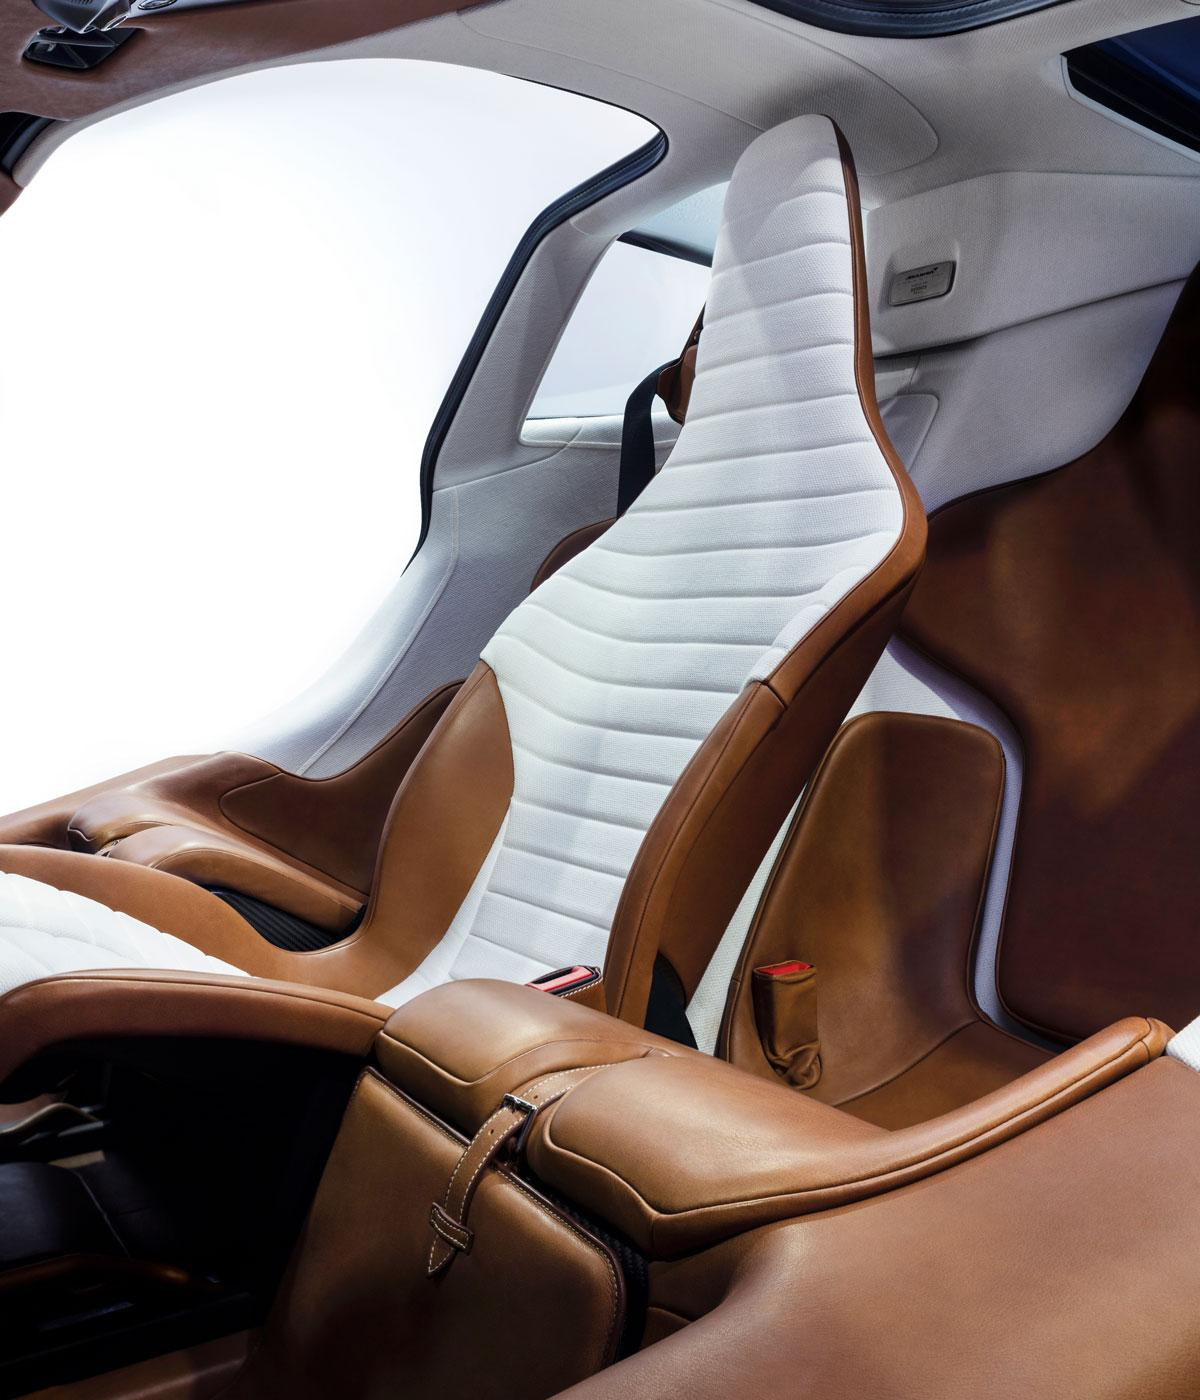 A brown leather seat in a sports car